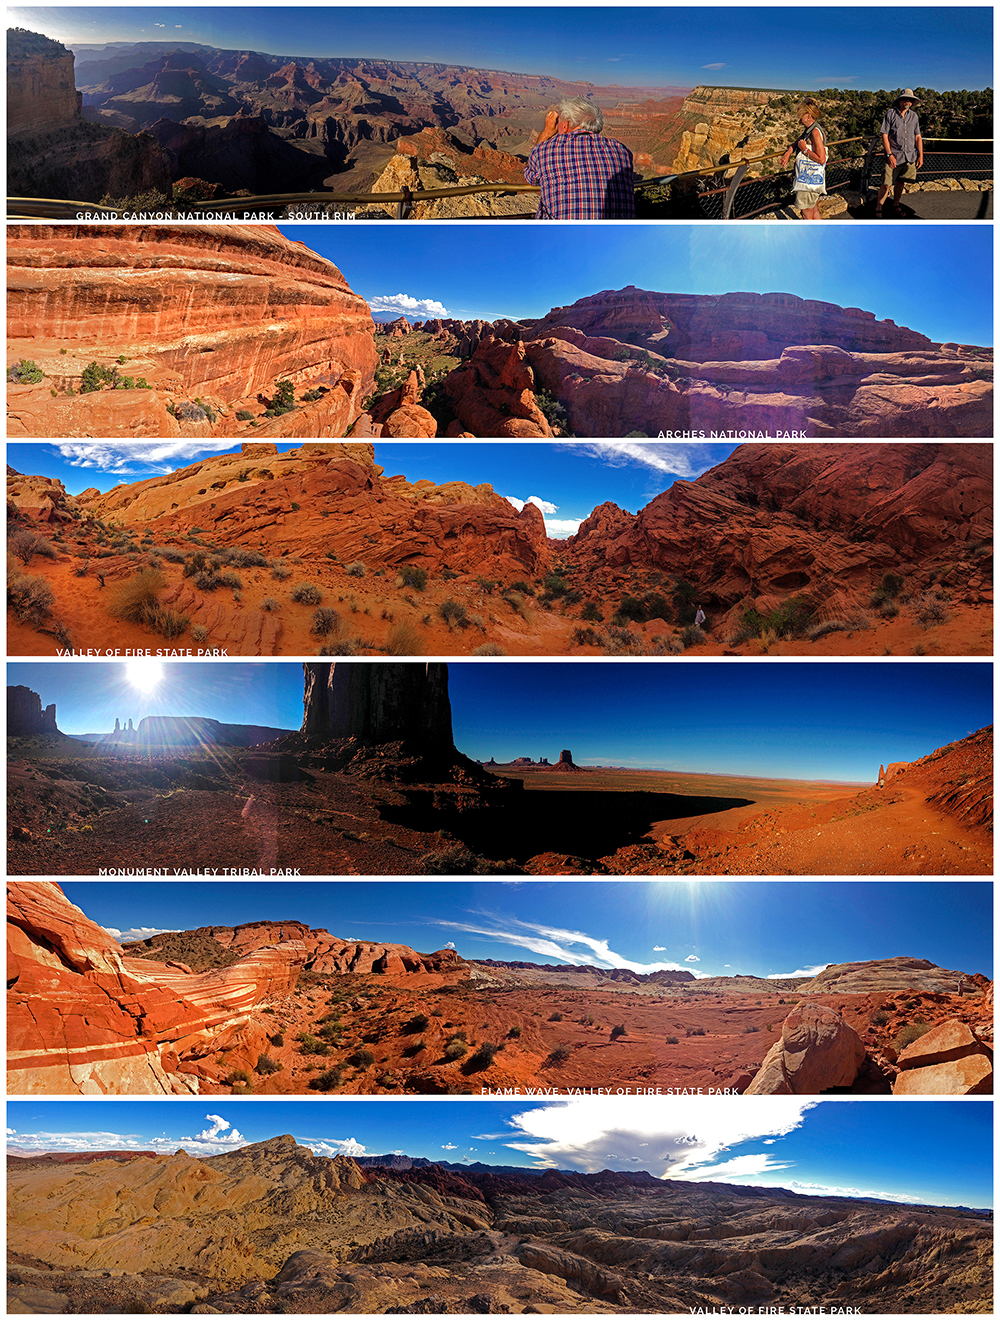 American Southwest 2014 Panorama Poster_09